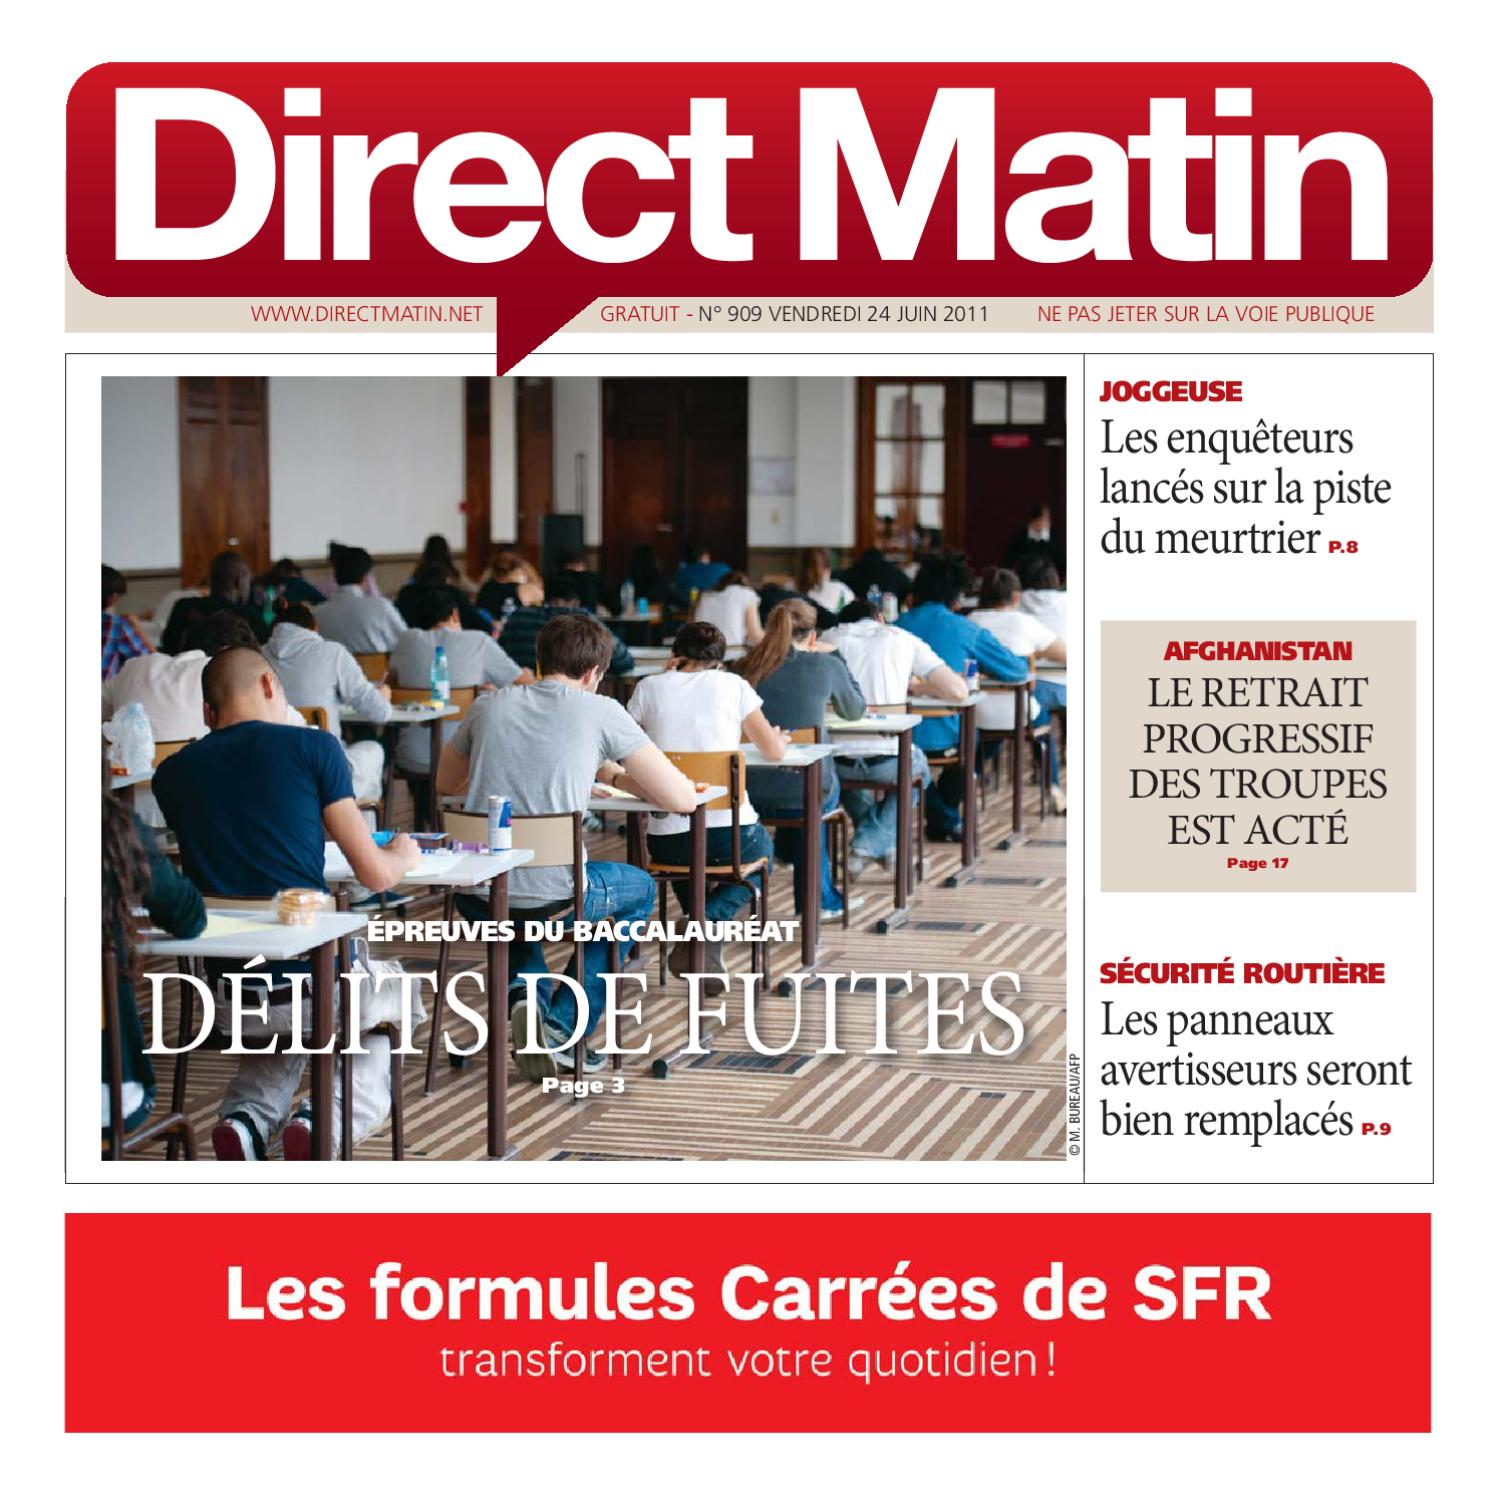 direct matin edition paris ile de france 909 by bollor issuu. Black Bedroom Furniture Sets. Home Design Ideas